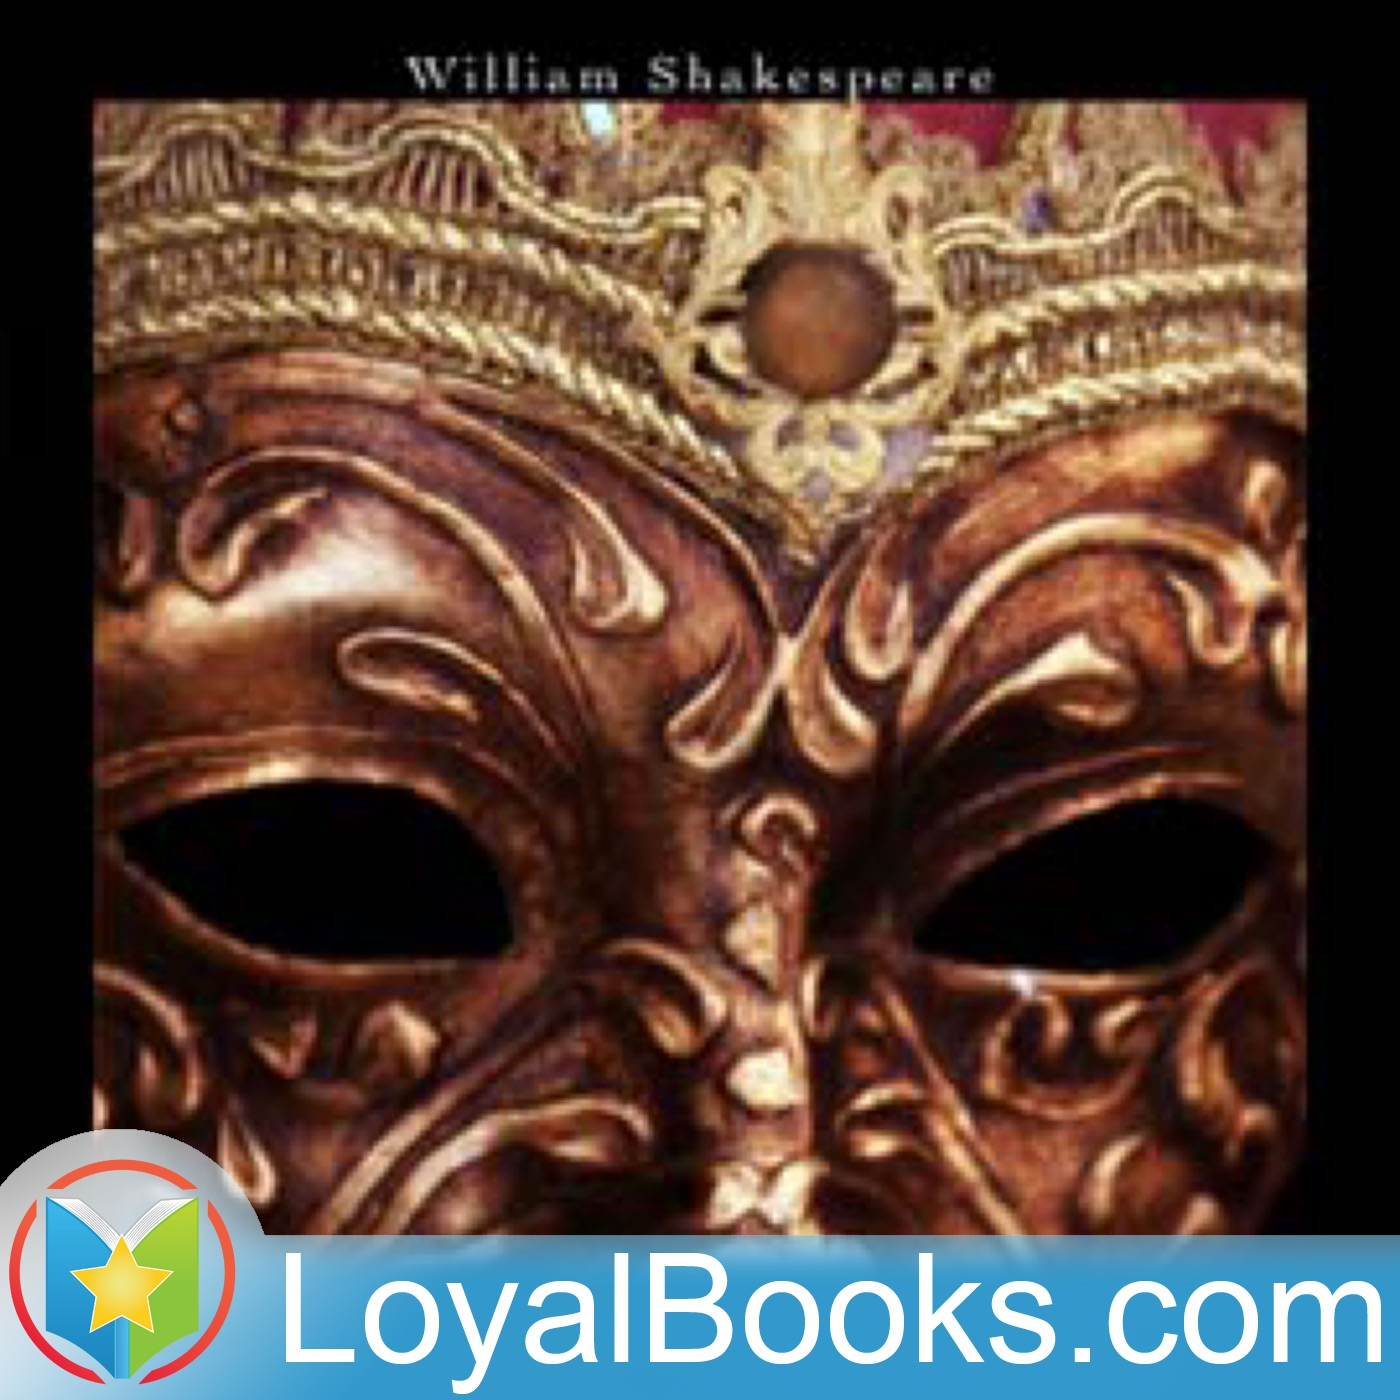 the themes of prejudice and loyalty in the play merchant of venice by william shakespeare